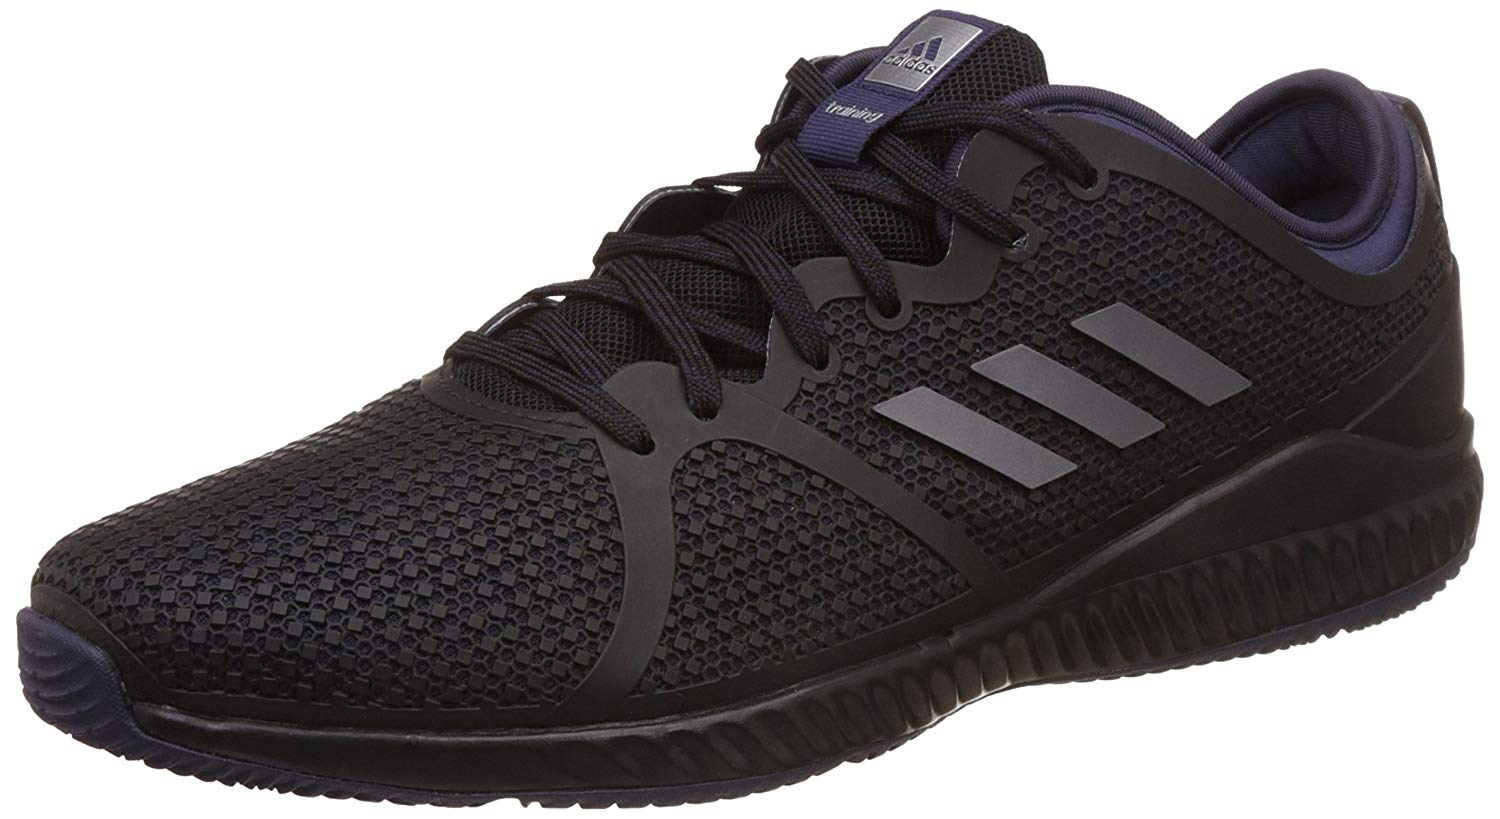 Women Training Adidas CrazyTrain RPU Pro Shoes - BY2101 | Black